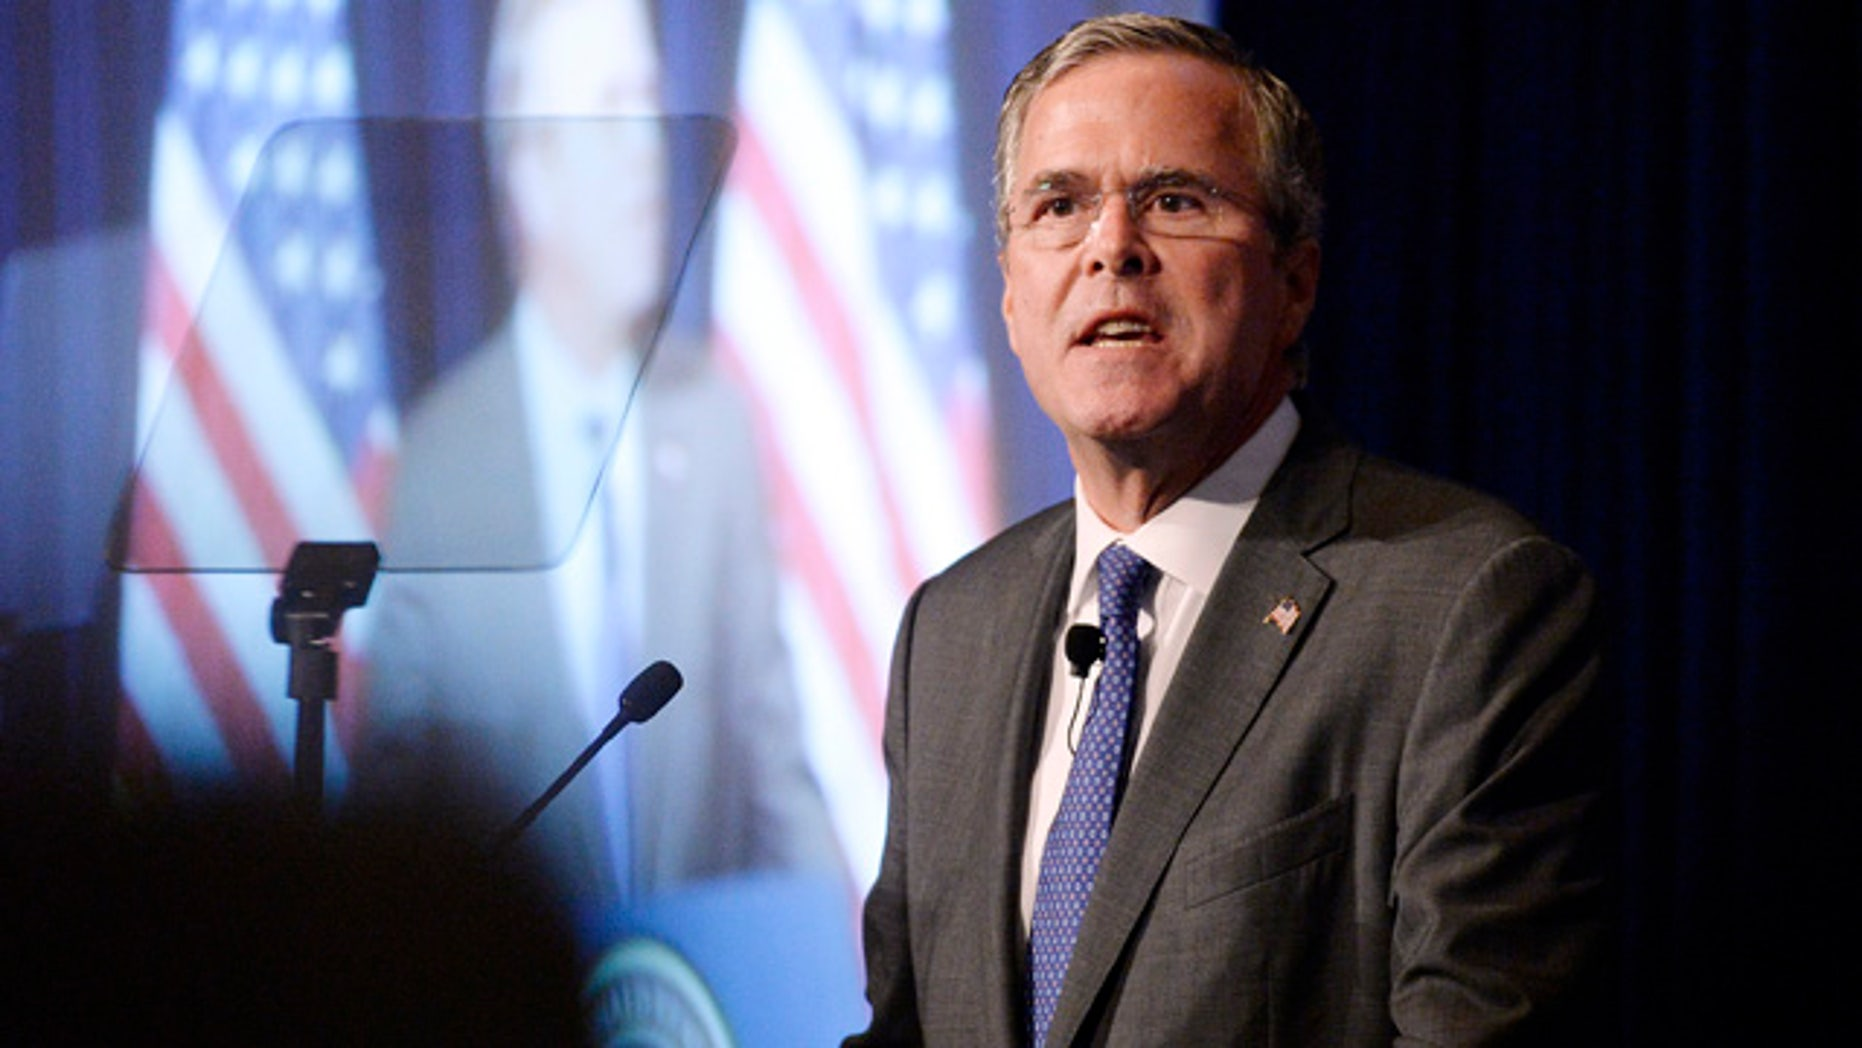 Aug. 11, 2015: Republican presidential candidate Jeb Bush speaks at the Reagan Presidential Library in Simi Valley, Calif. (AP Photo/Kevork Djansezian)